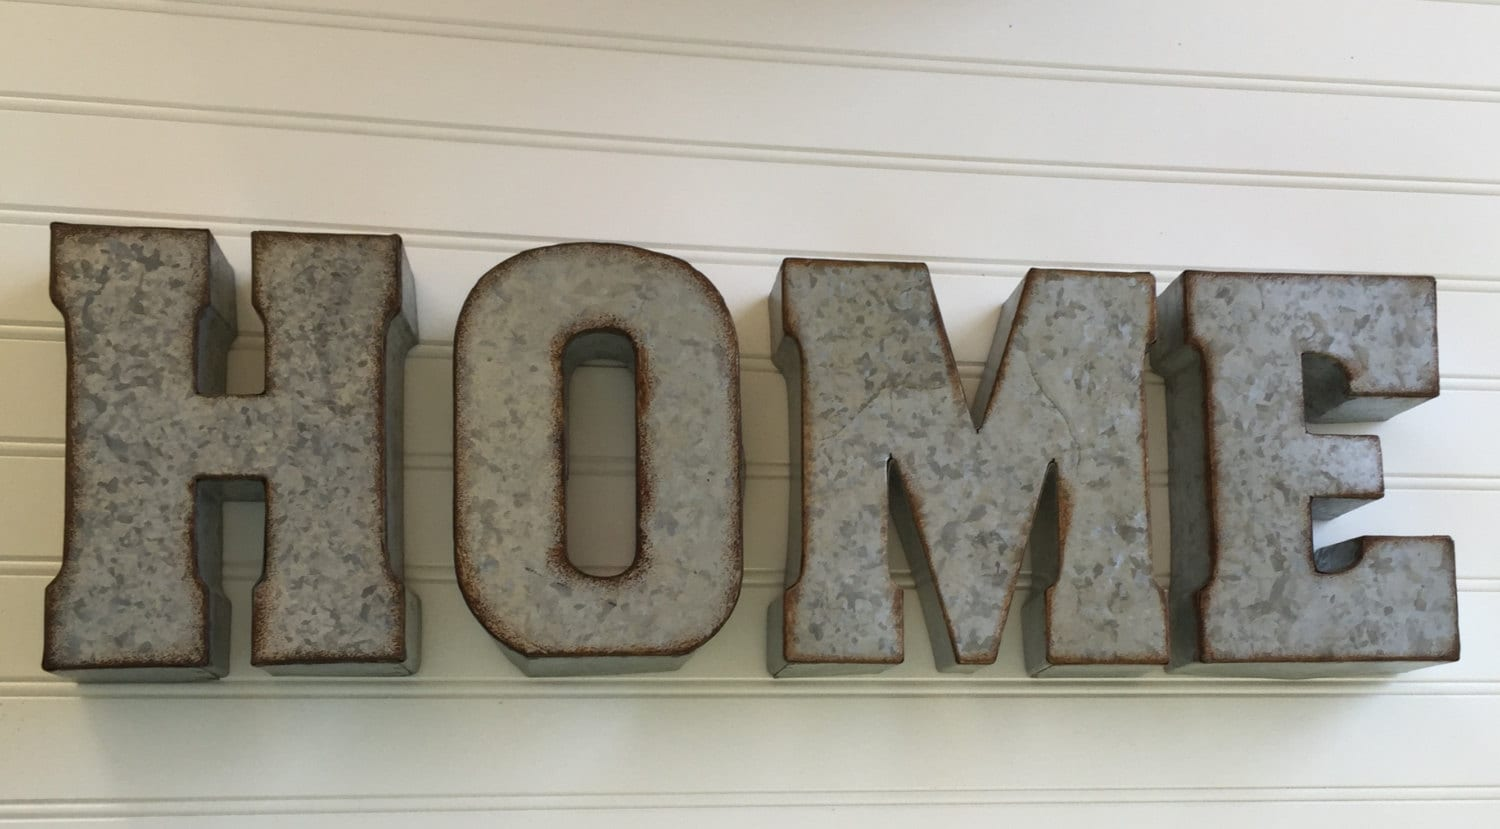 Steel Letters For Walls Decorative Metal Letter You Pick  Home Wall Letter Sign